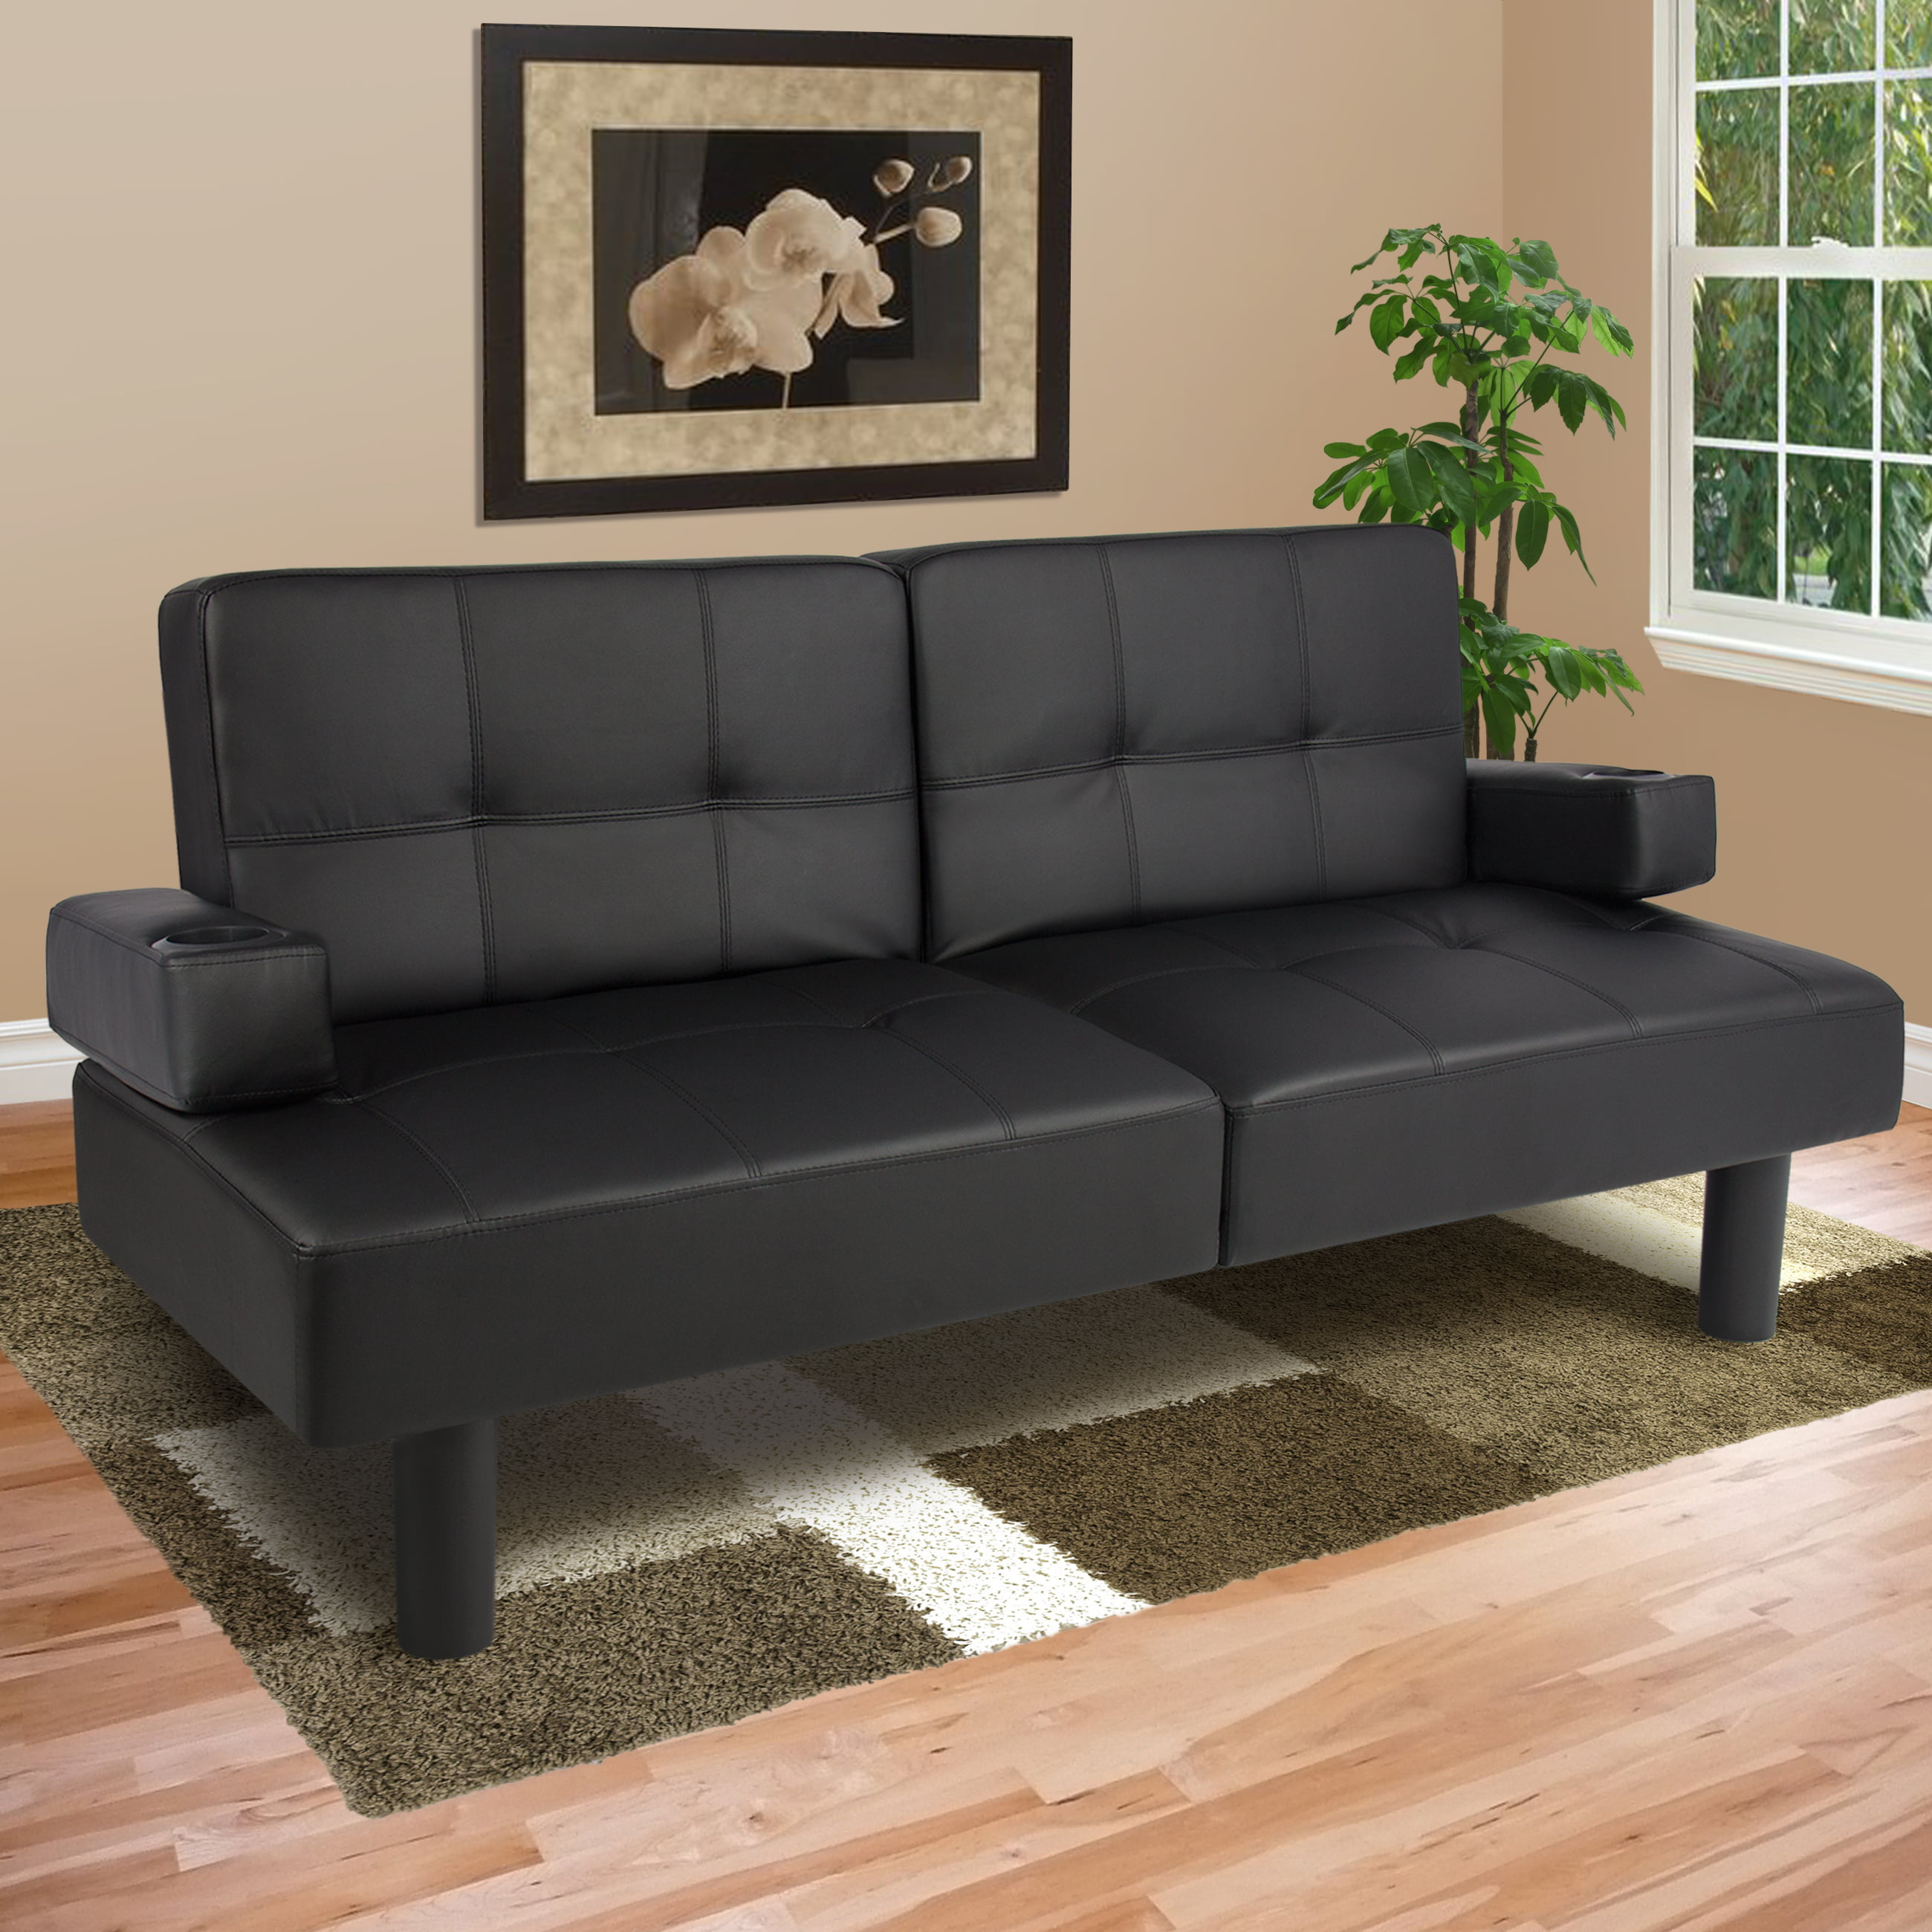 best choice products modern faux leather fold down convertible futon sofa bed w  2 cup holders   black   walmart   best choice products modern faux leather fold down convertible      rh   walmart